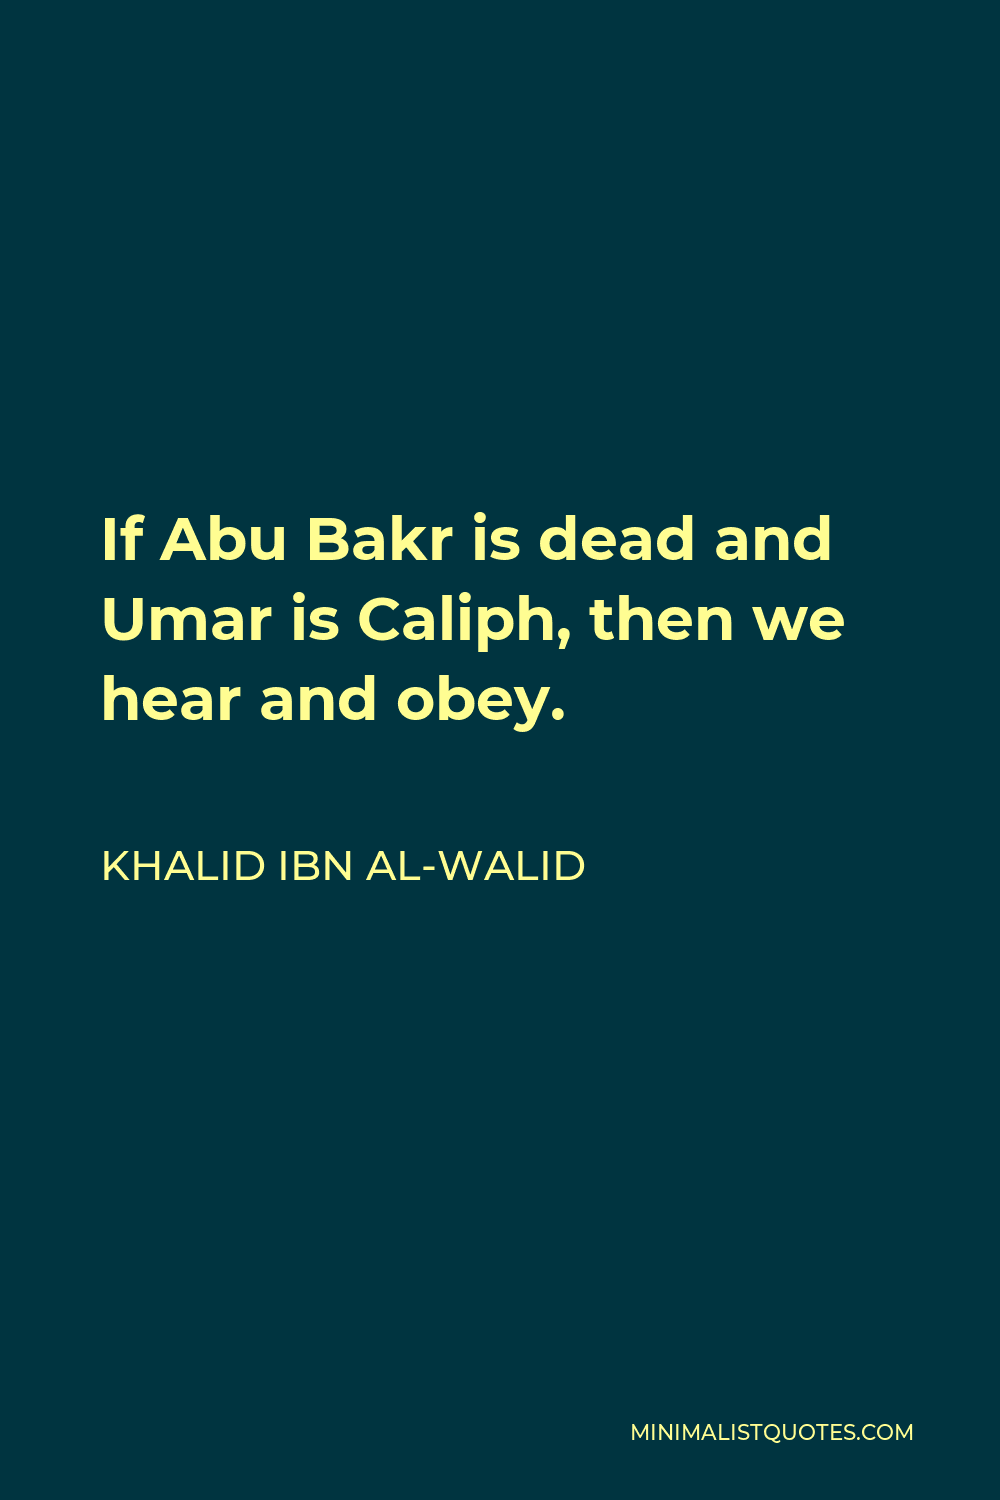 Khalid ibn al-Walid Quote - If Abu Bakr is dead and Umar is Caliph, then we hear and obey.